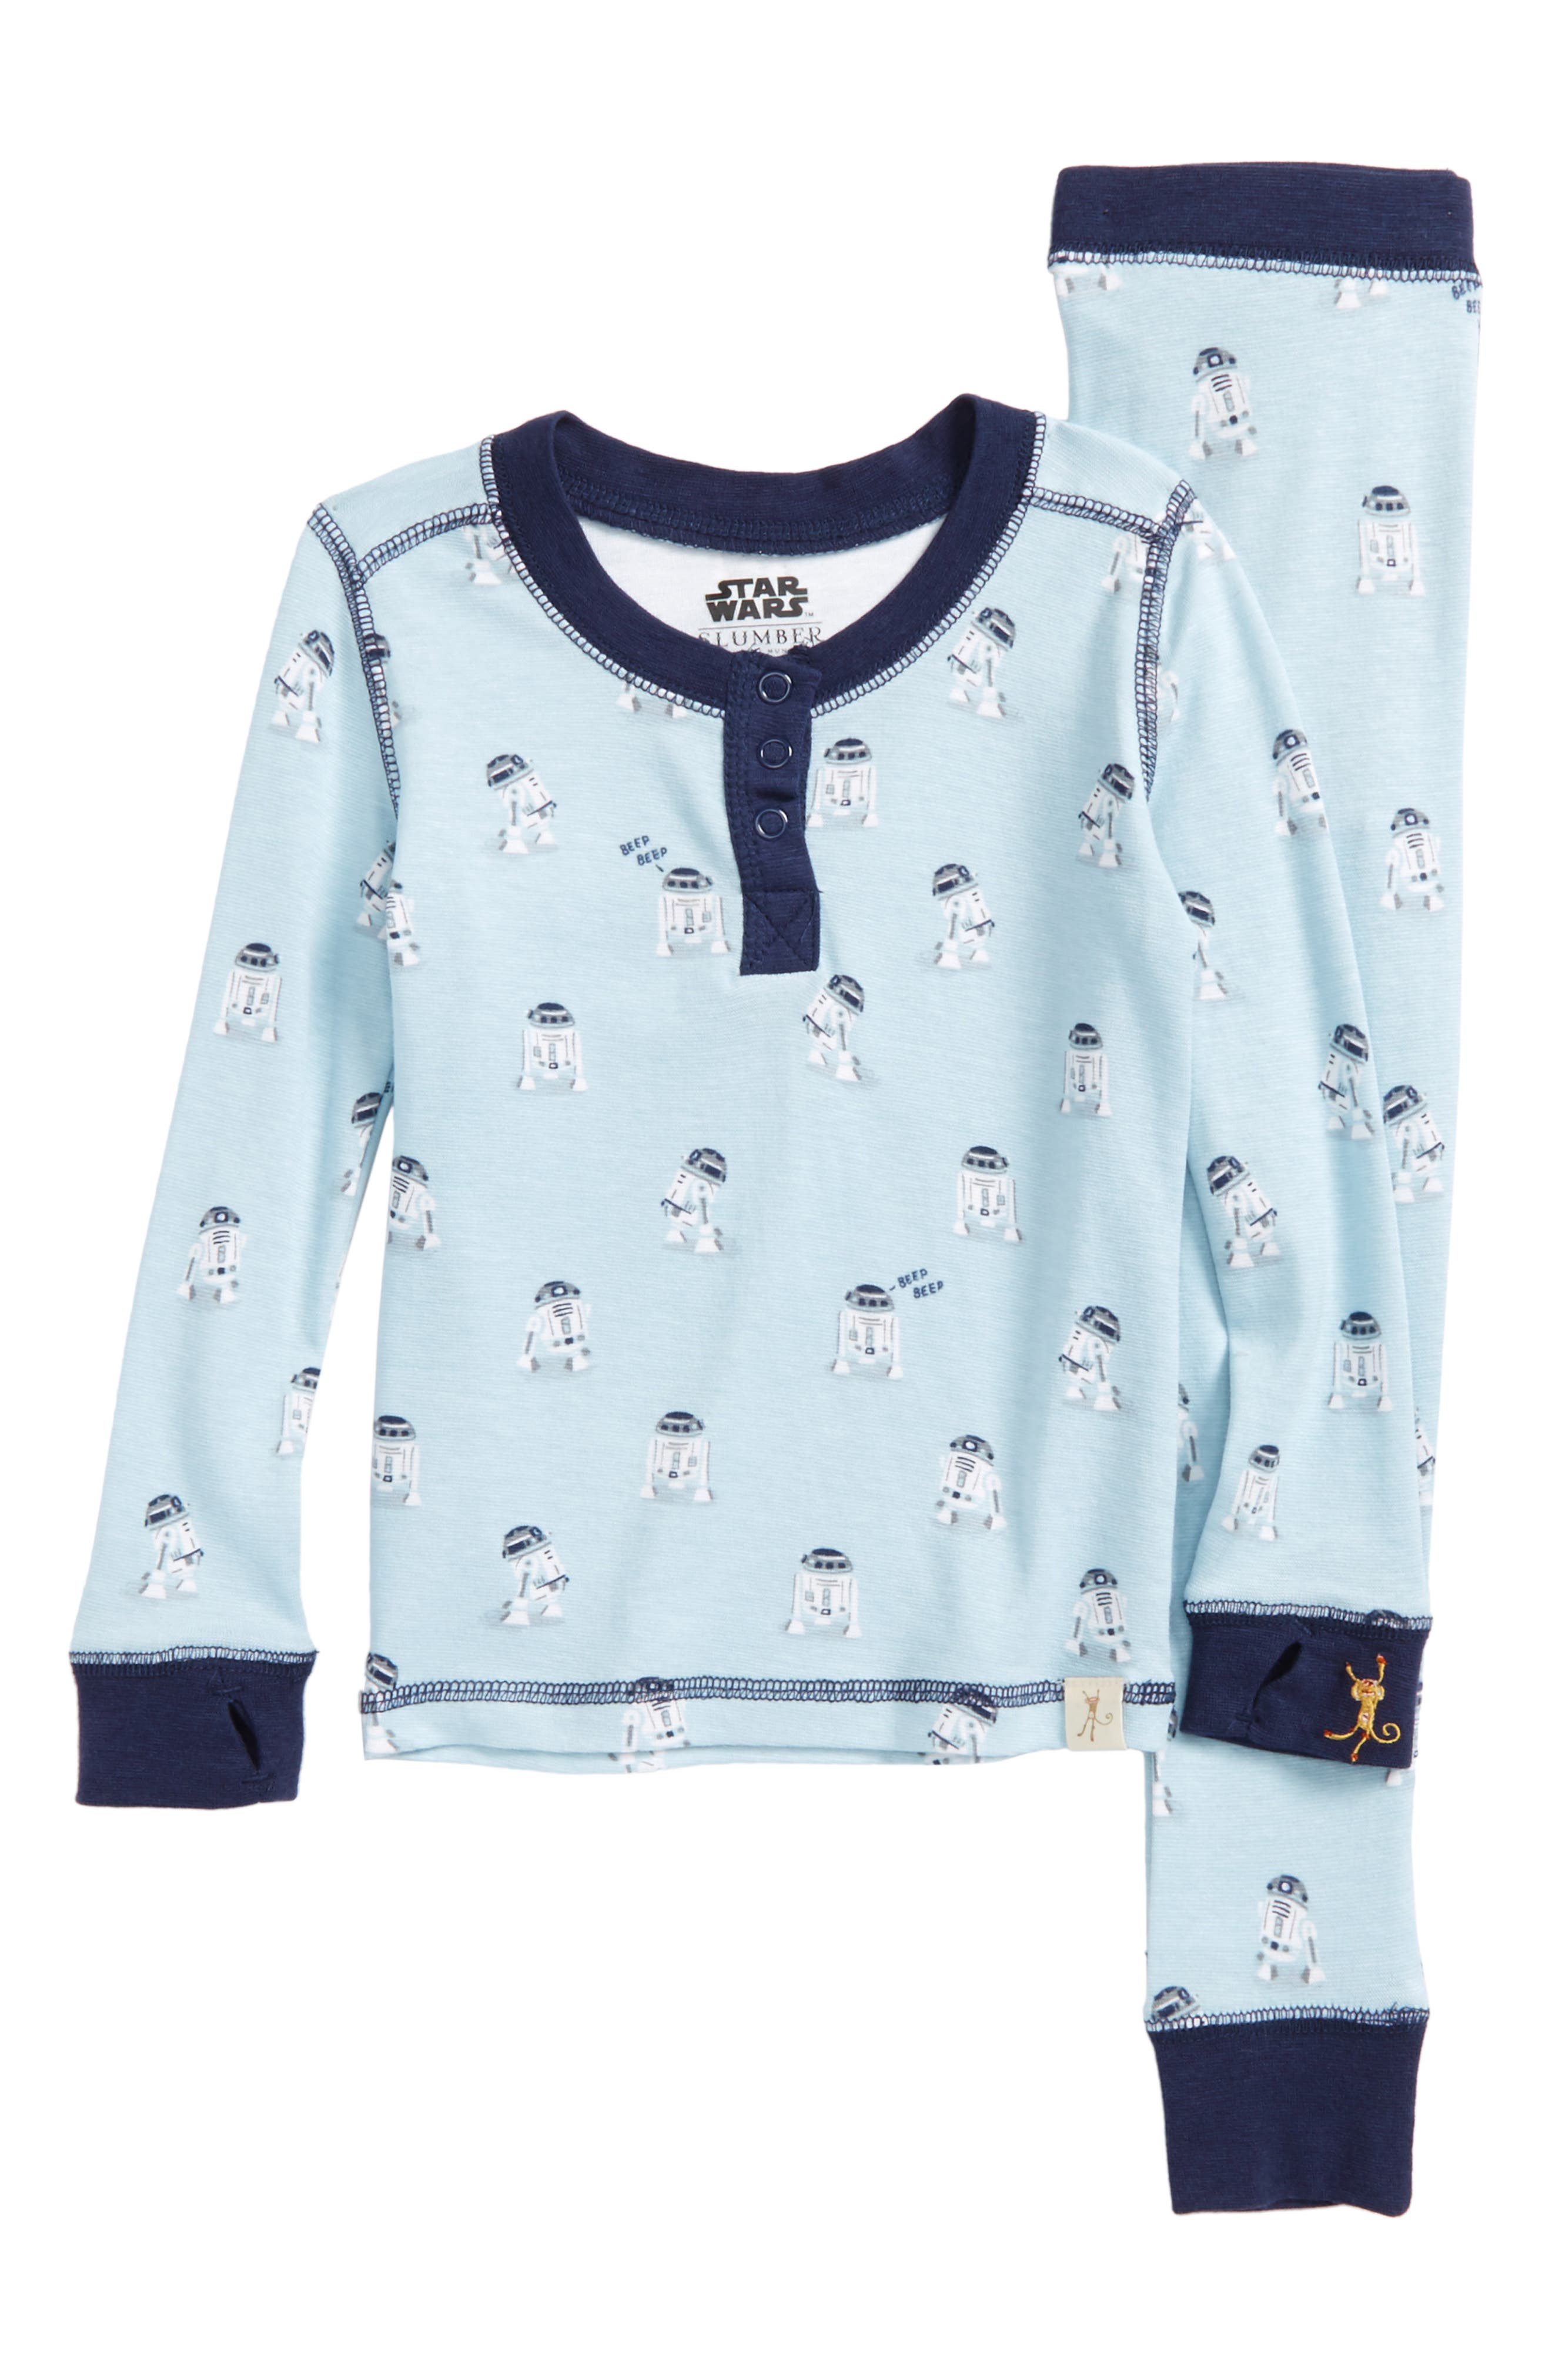 Star Wars<sup>™</sup> - R2-D2 Fitted Two-Piece Pajamas,                             Main thumbnail 1, color,                             Light Grey R2d2